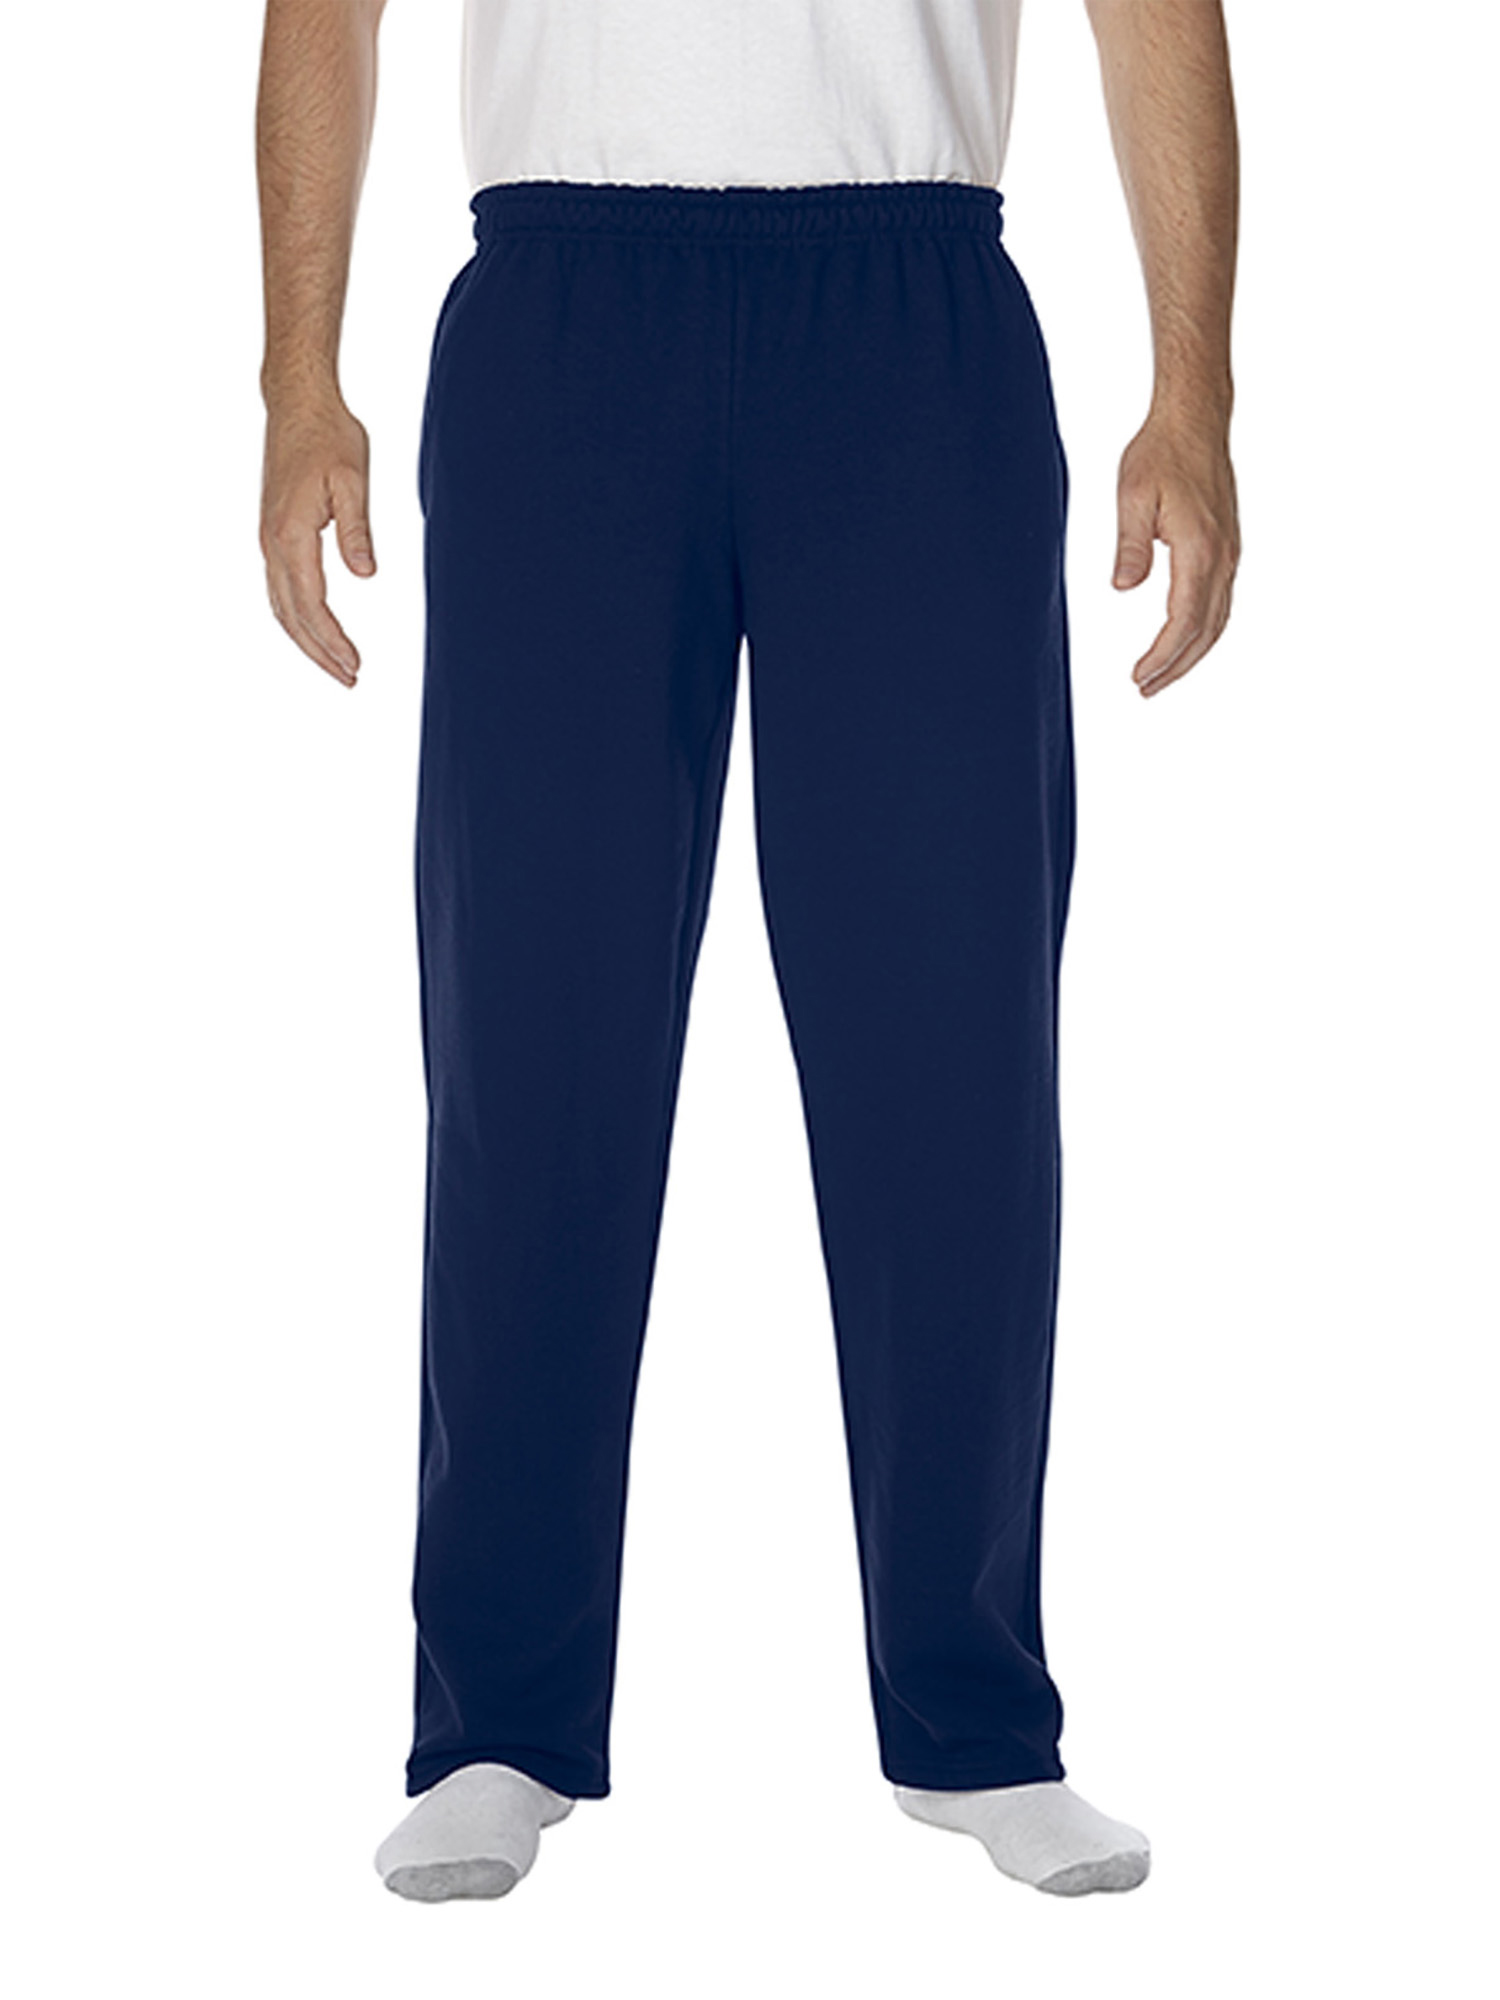 Big Men's Open Bottom Pocketed Sweatpant, 2XL